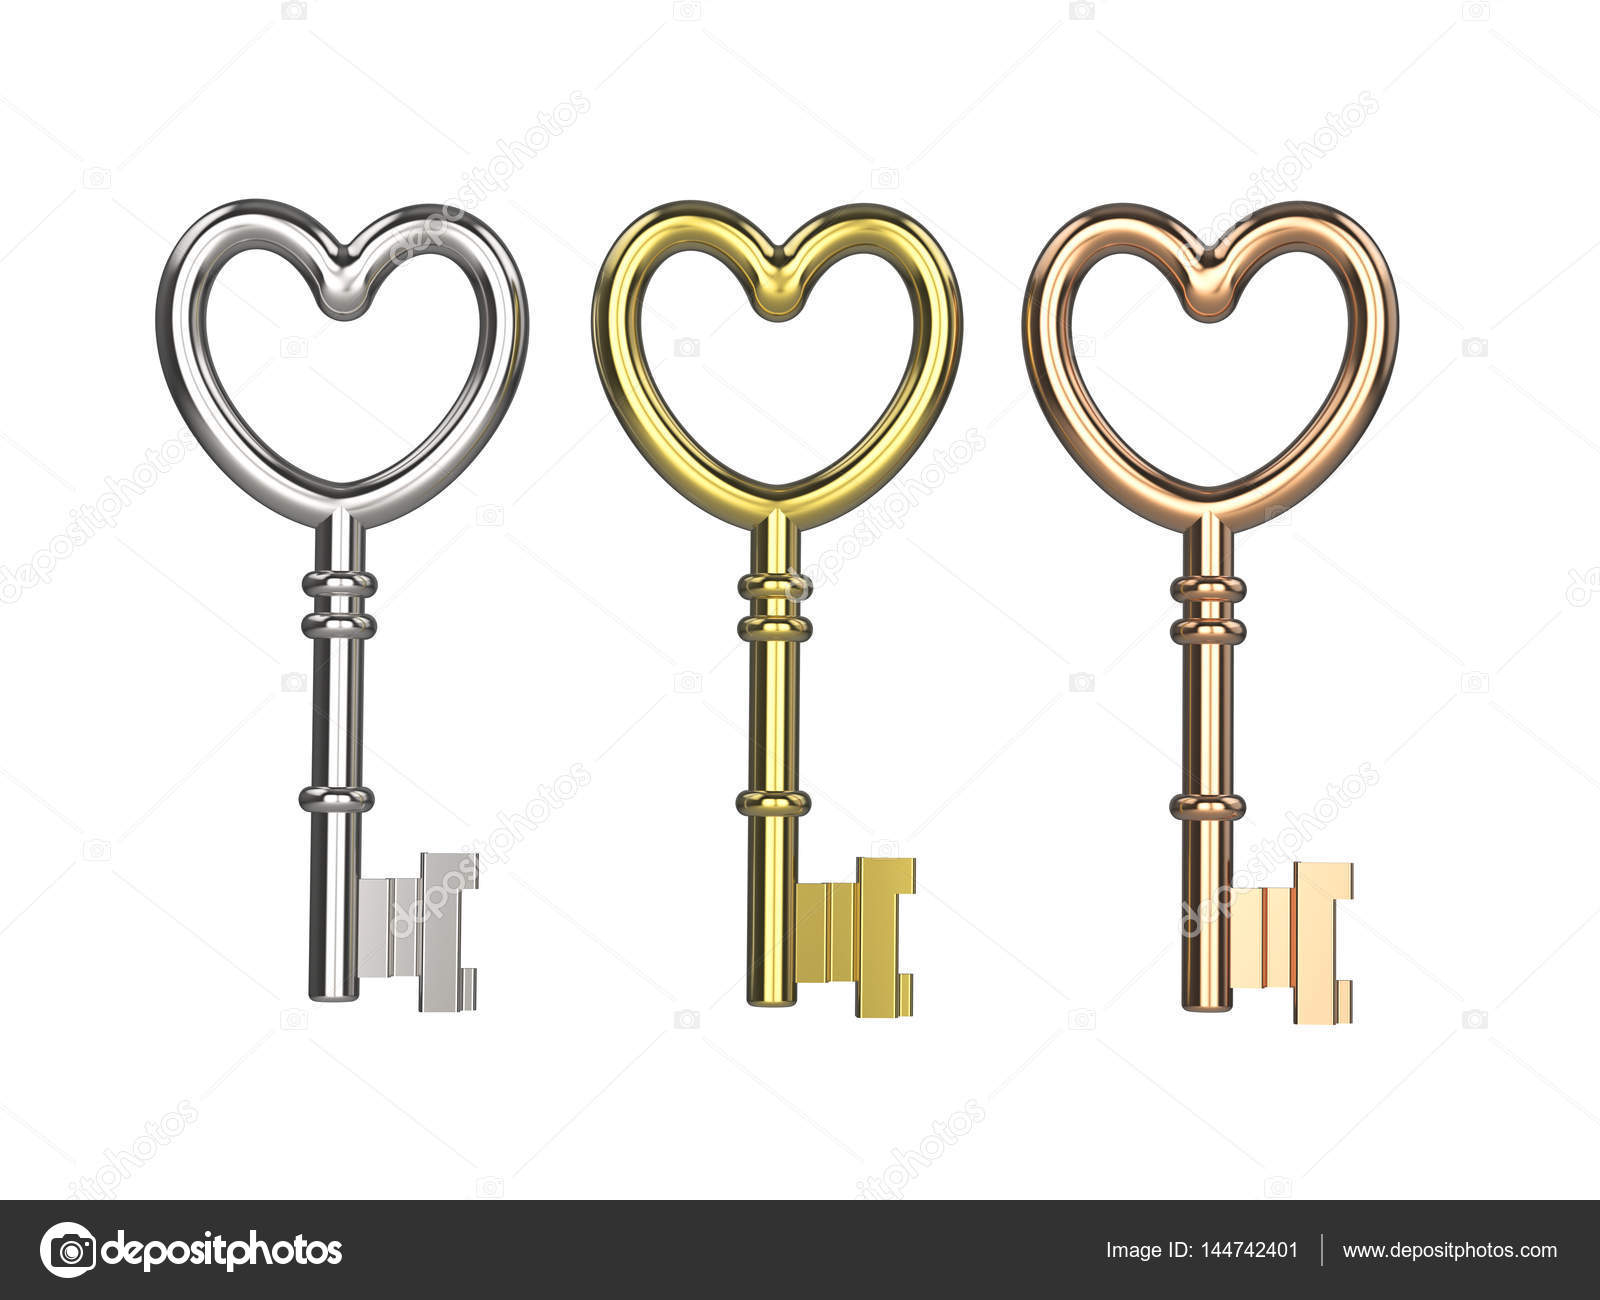 3d illustration three keys silver gold copper stock photo 3d illustration three keys silver gold copper on white background photo by 3djewelry buycottarizona Image collections